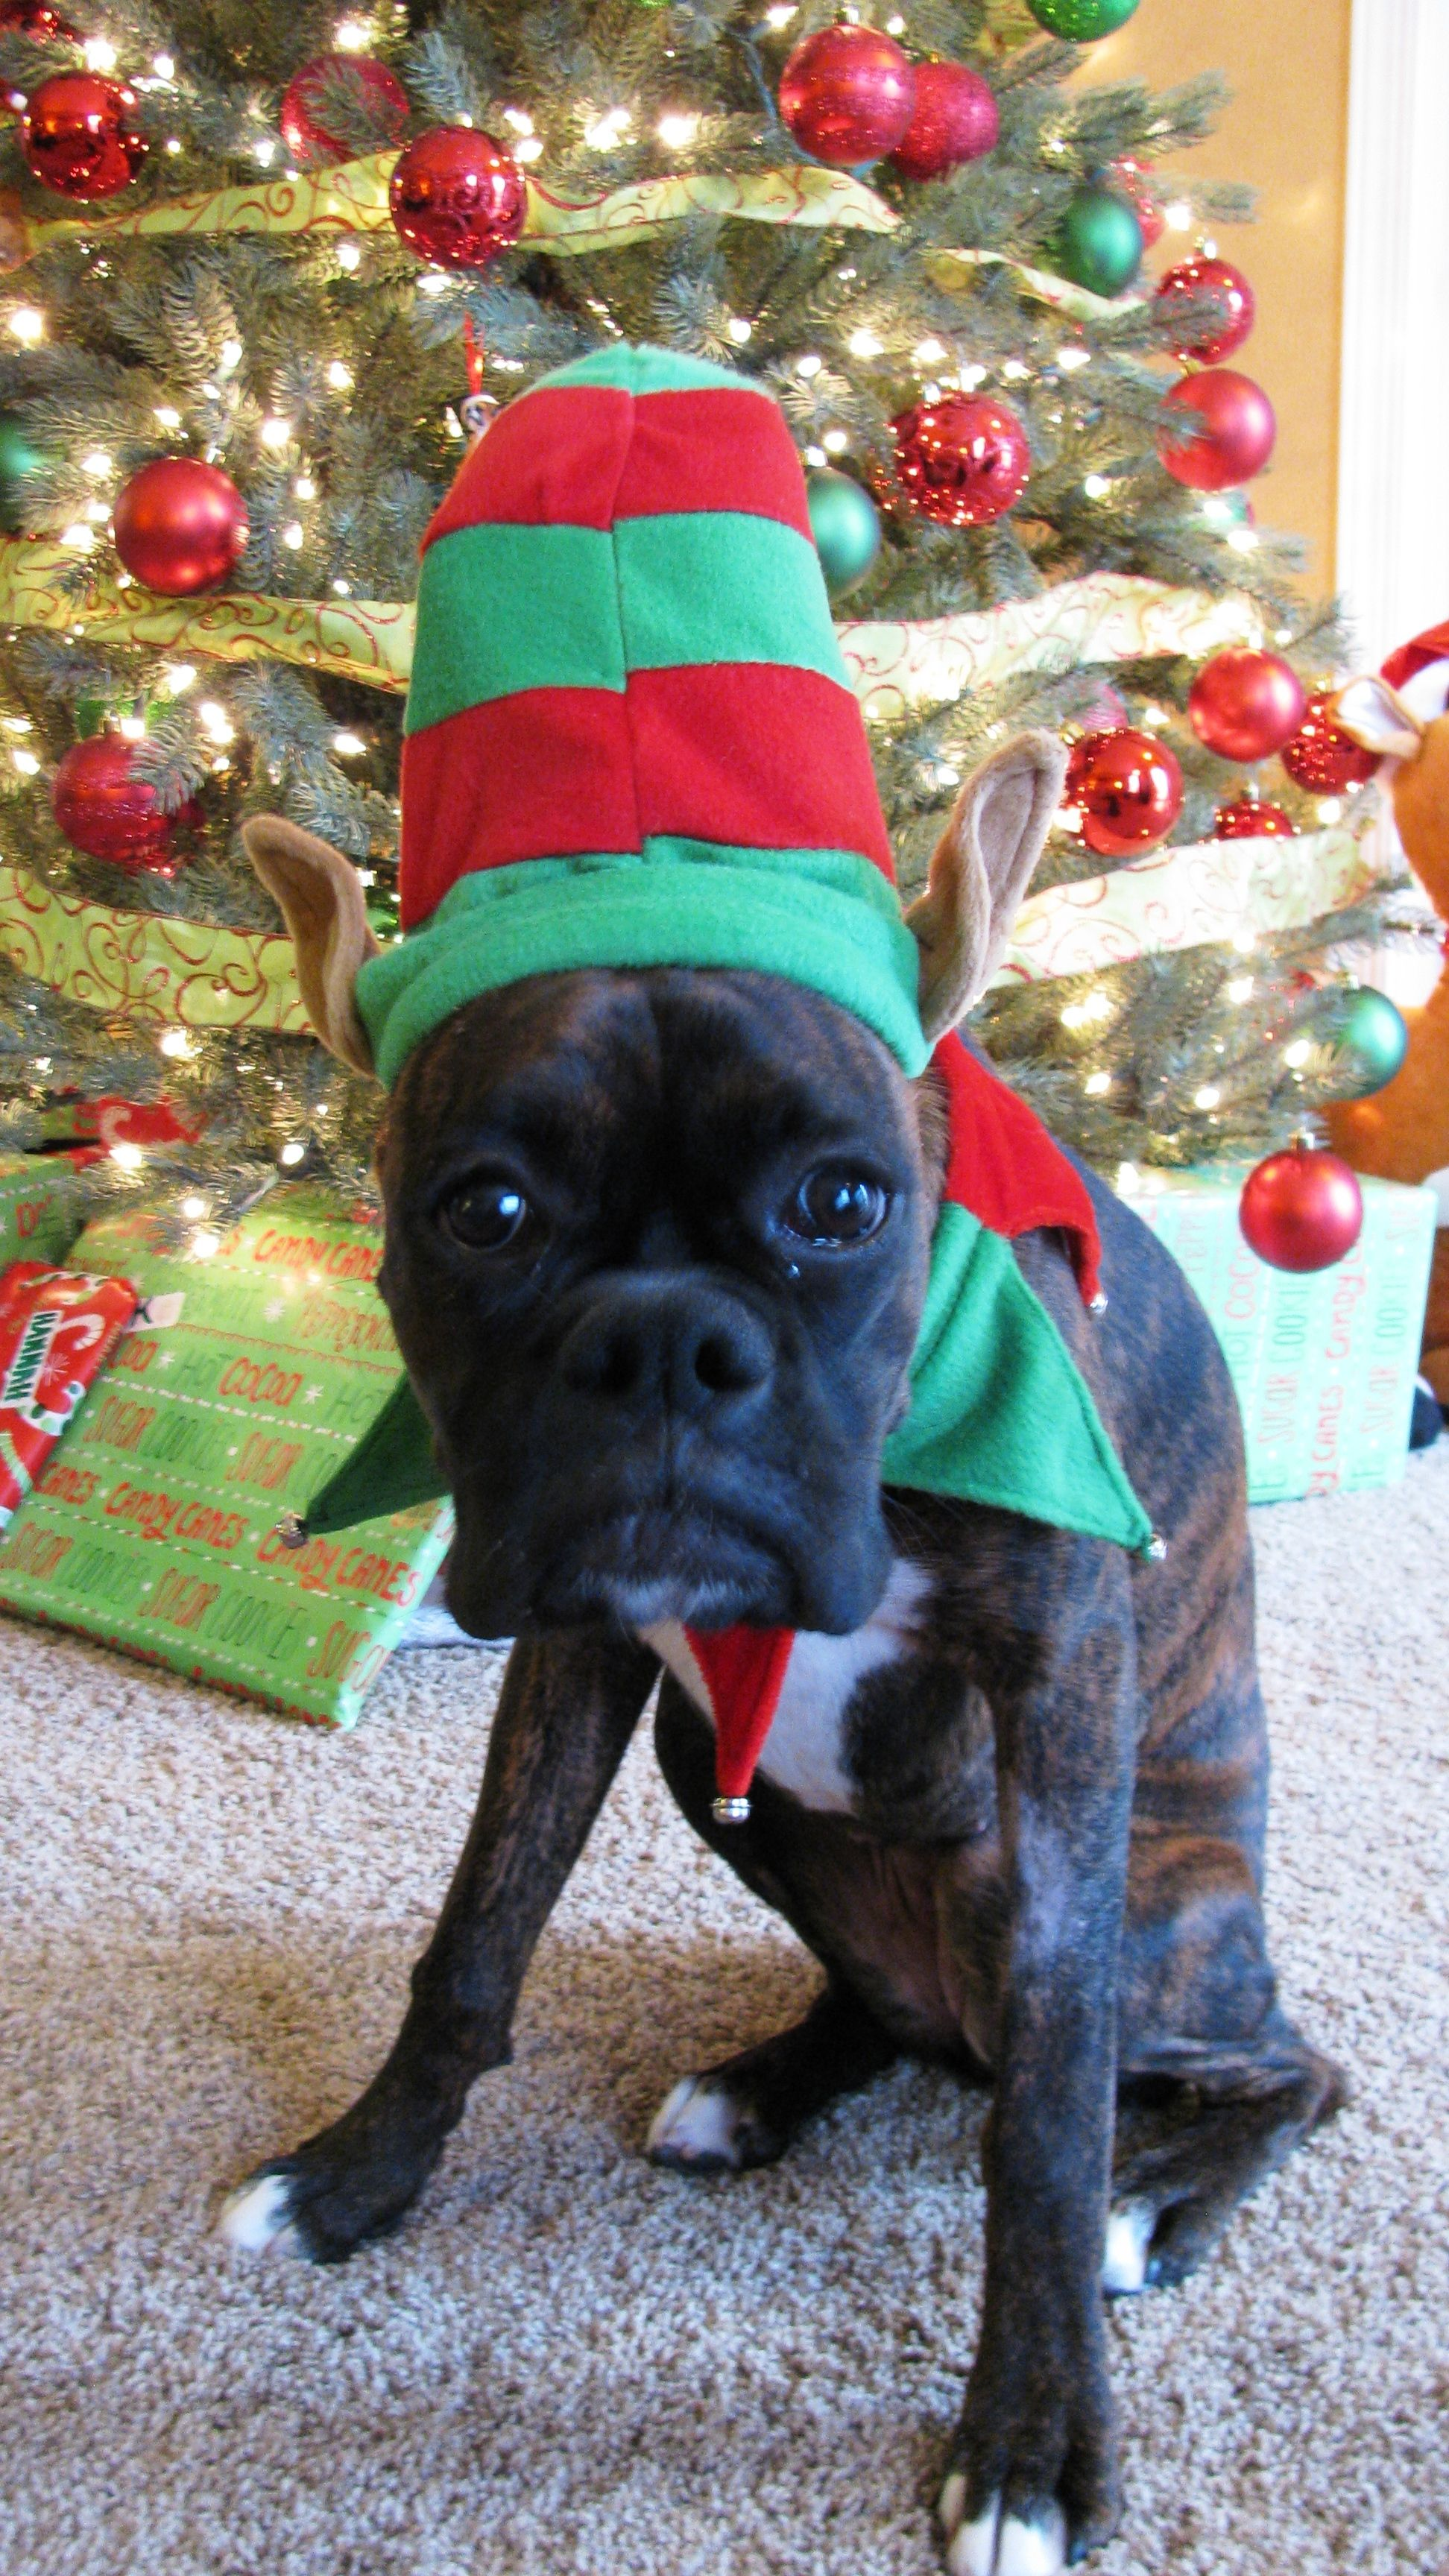 Can't wait for my first puppy Christmas need a hat like